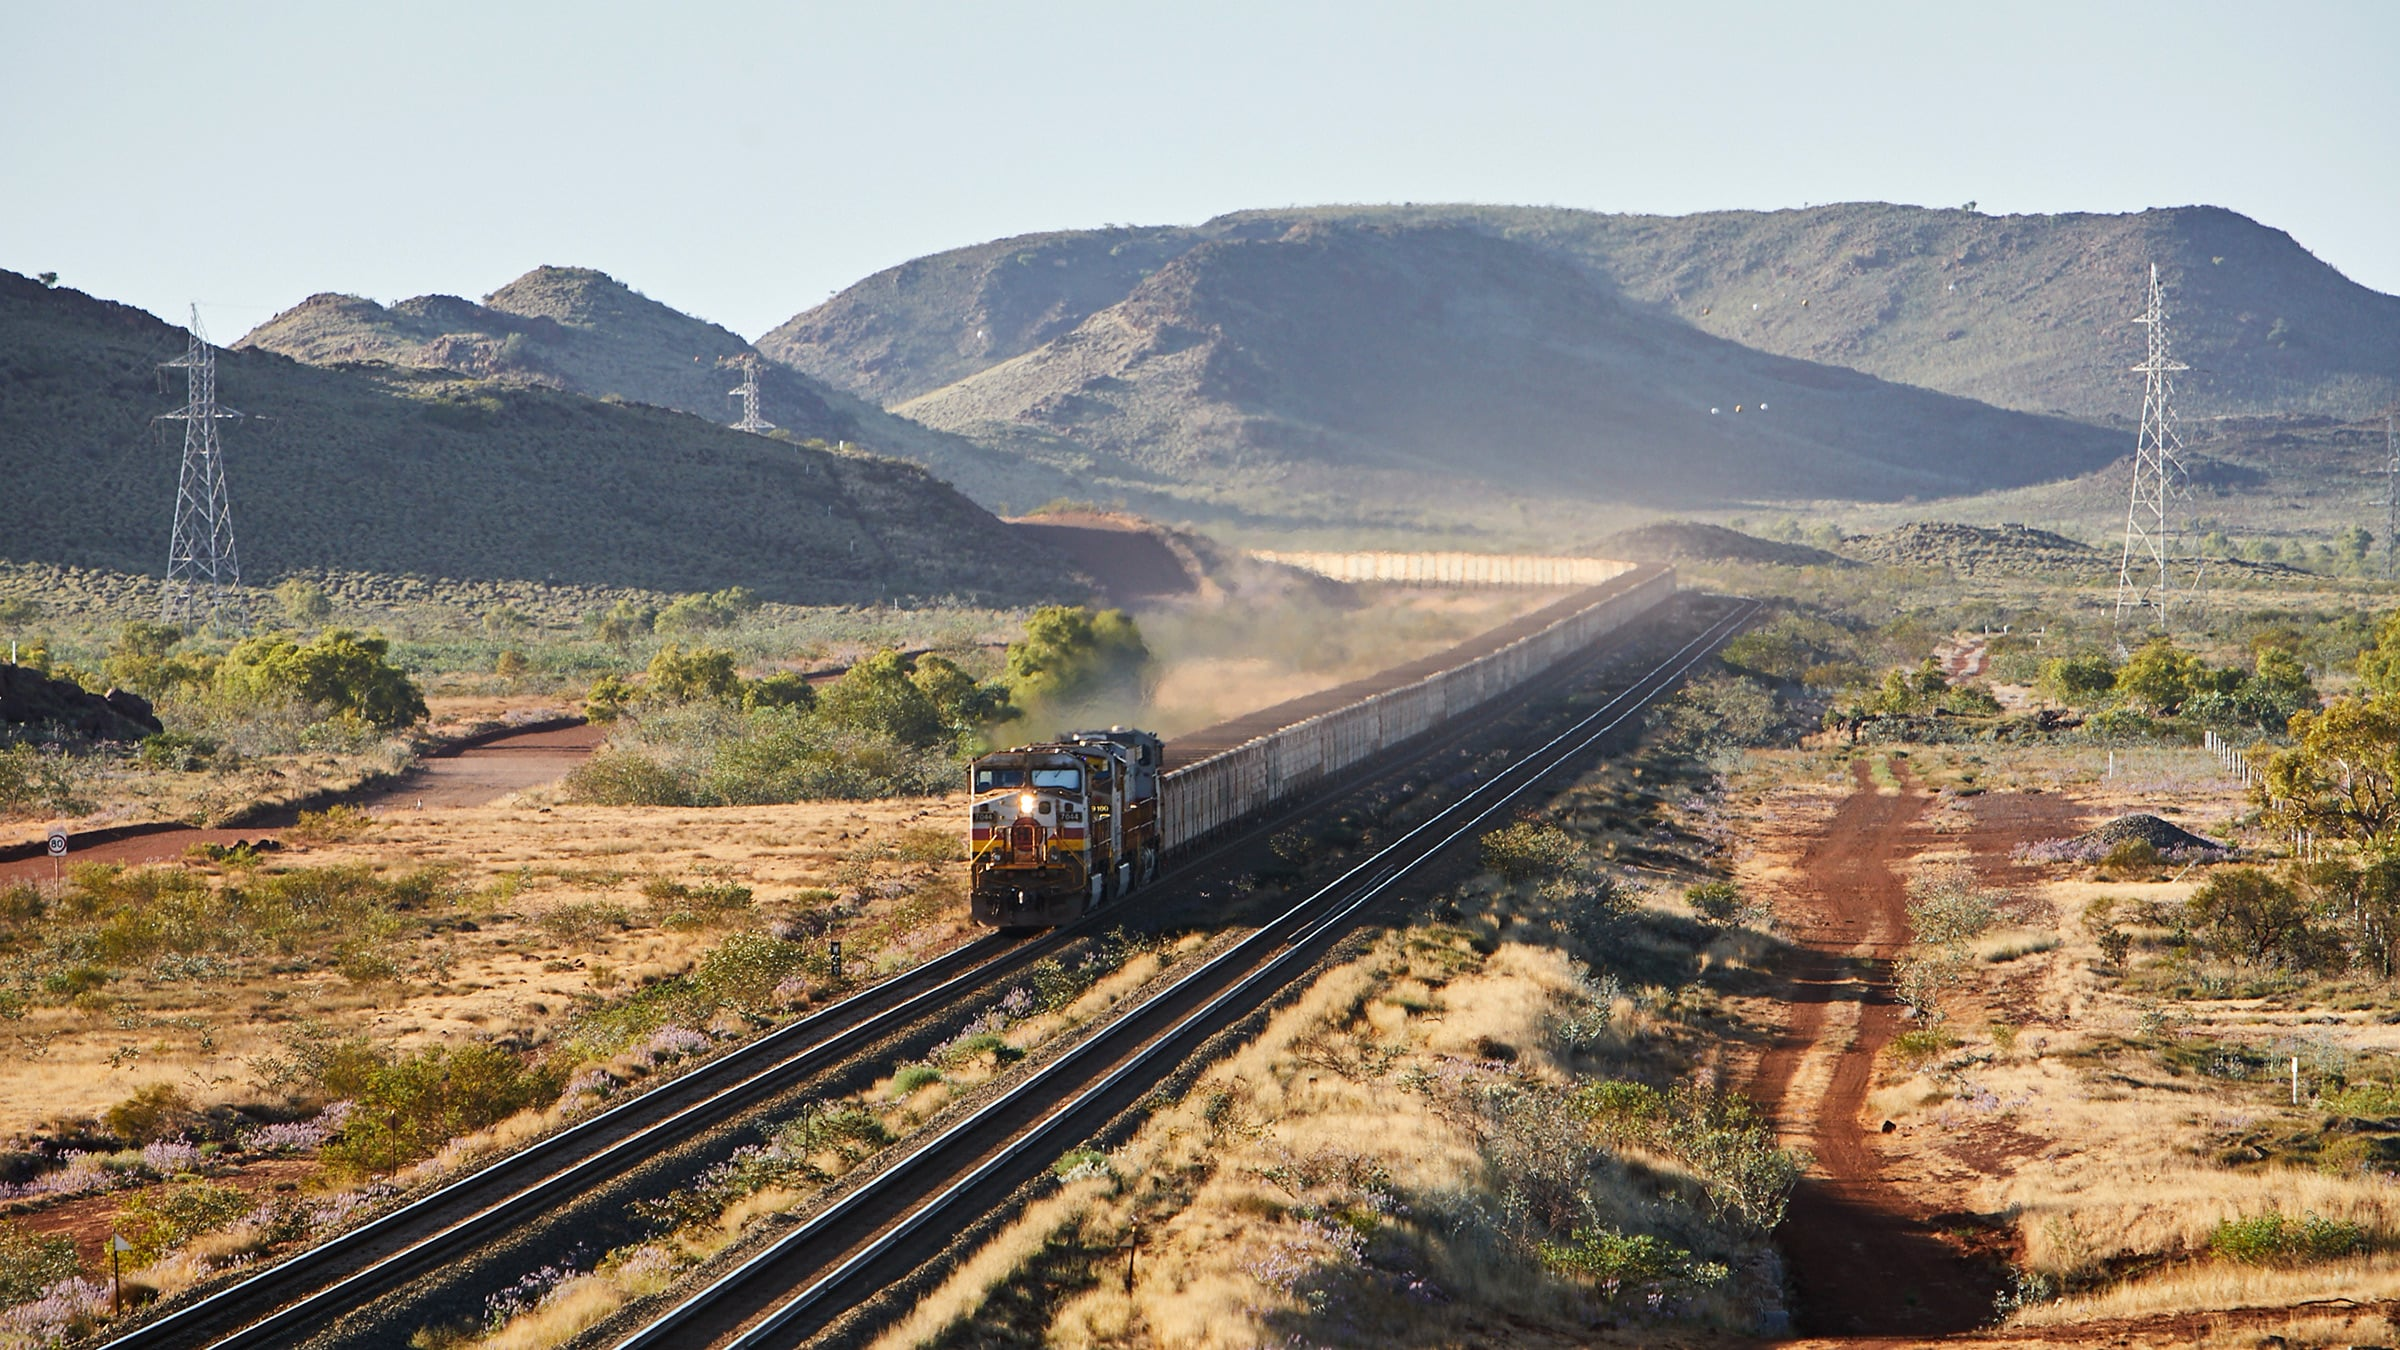 AutoHaul train, Pilbara